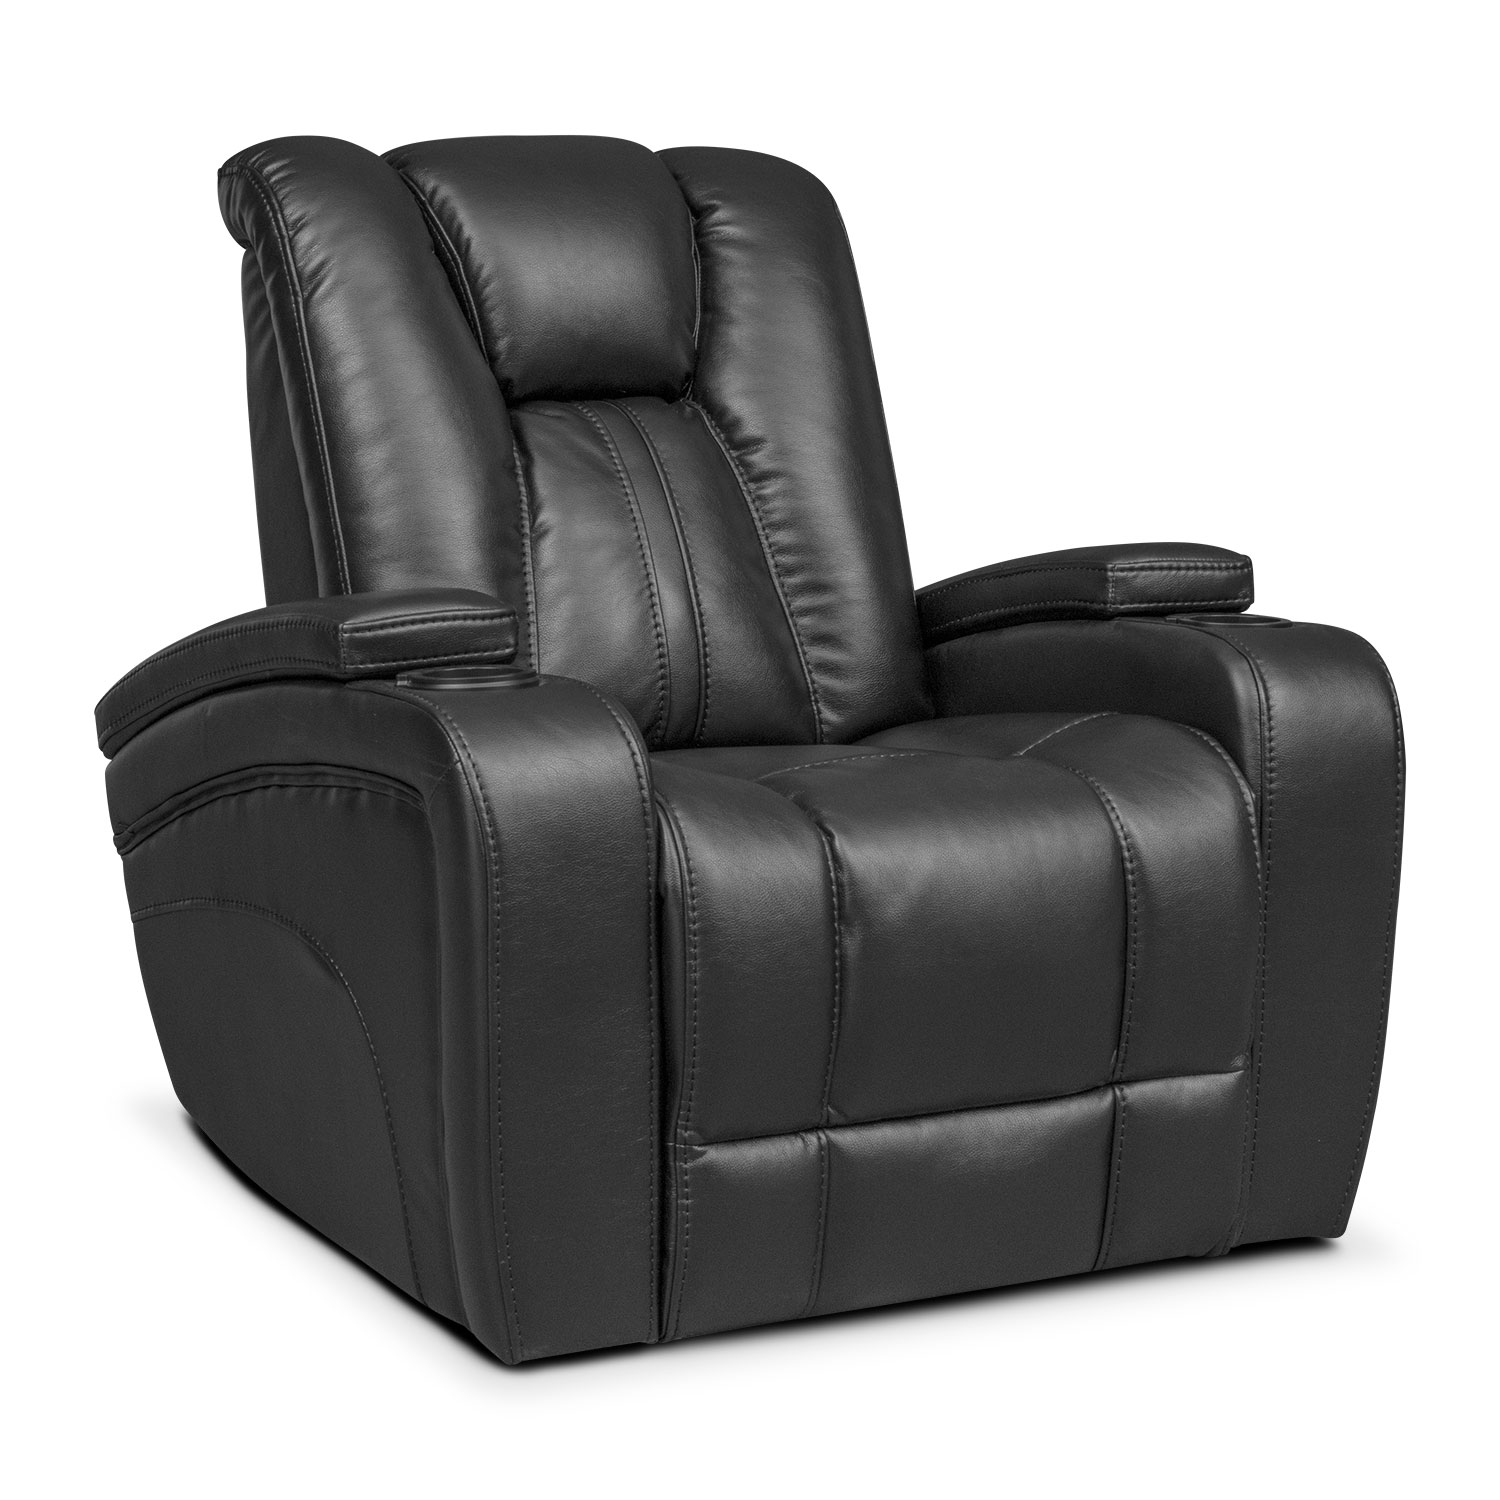 Pulsar power reclining sofa power reclining loveseat and power recliner set black value Power loveseat recliner